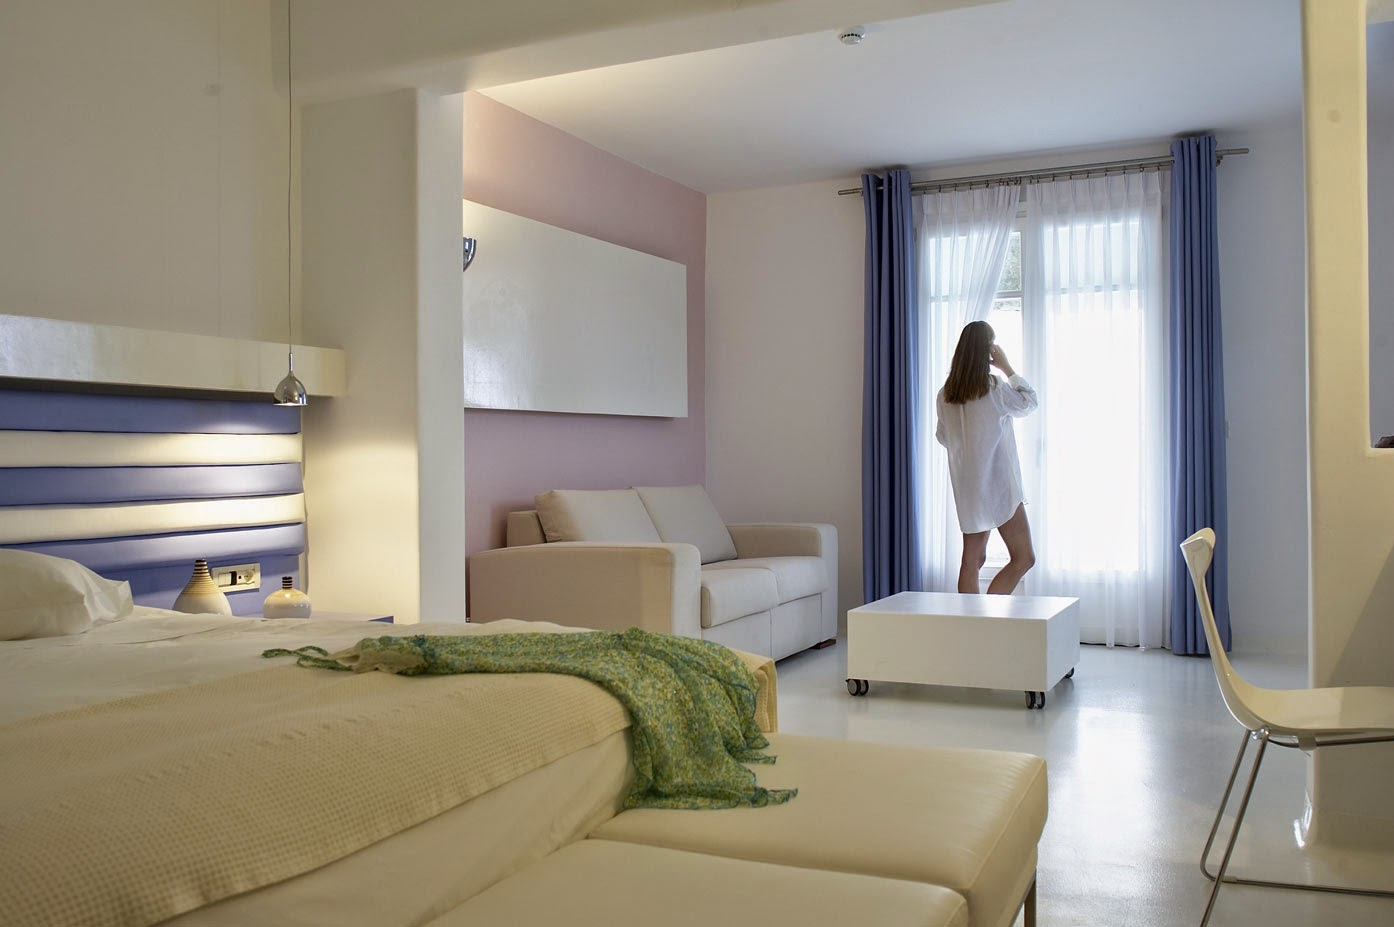 Mykonos tours amp travel bill amp coo hotel in mykonos greece - Rates Rooms For Bill Coo Suites Mykonos